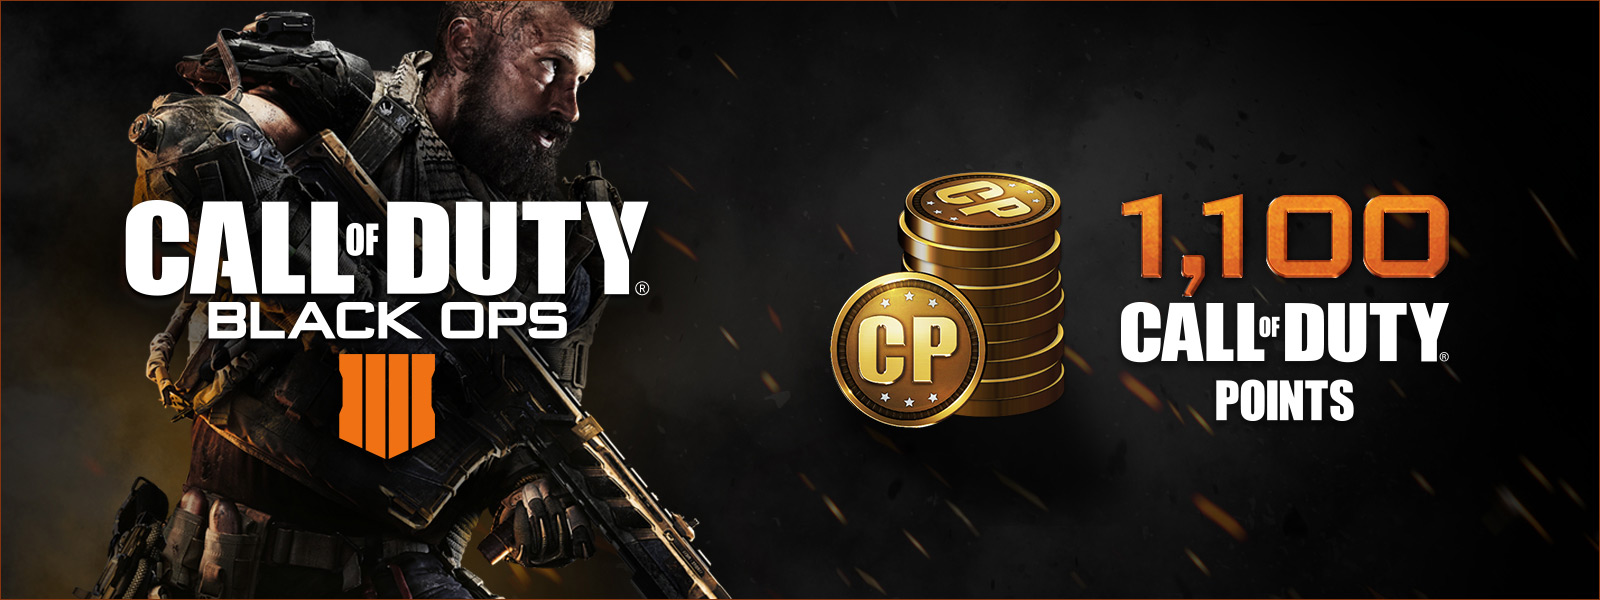 Call of Duty: Logotipo de -Black Ops 4 al lado de monedas con las letras CP escritas que representan 1100 puntos de Call of Duty